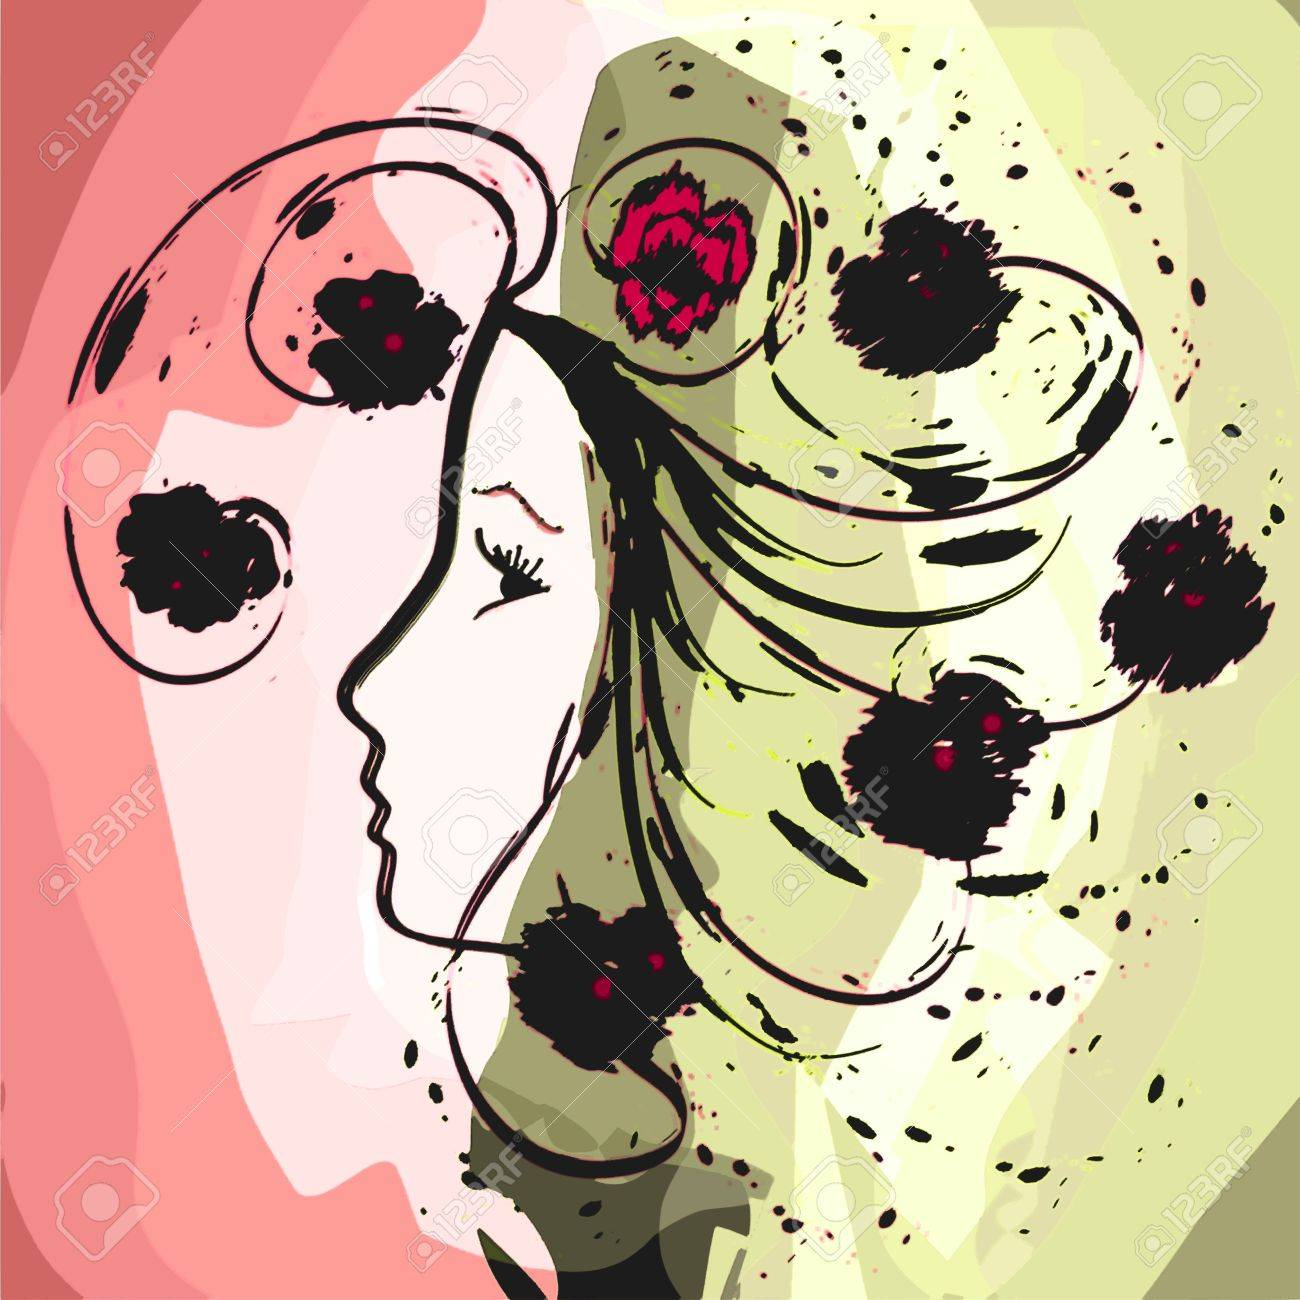 Girl profile in grunge floral watercolor design Stock Vector - 17420252